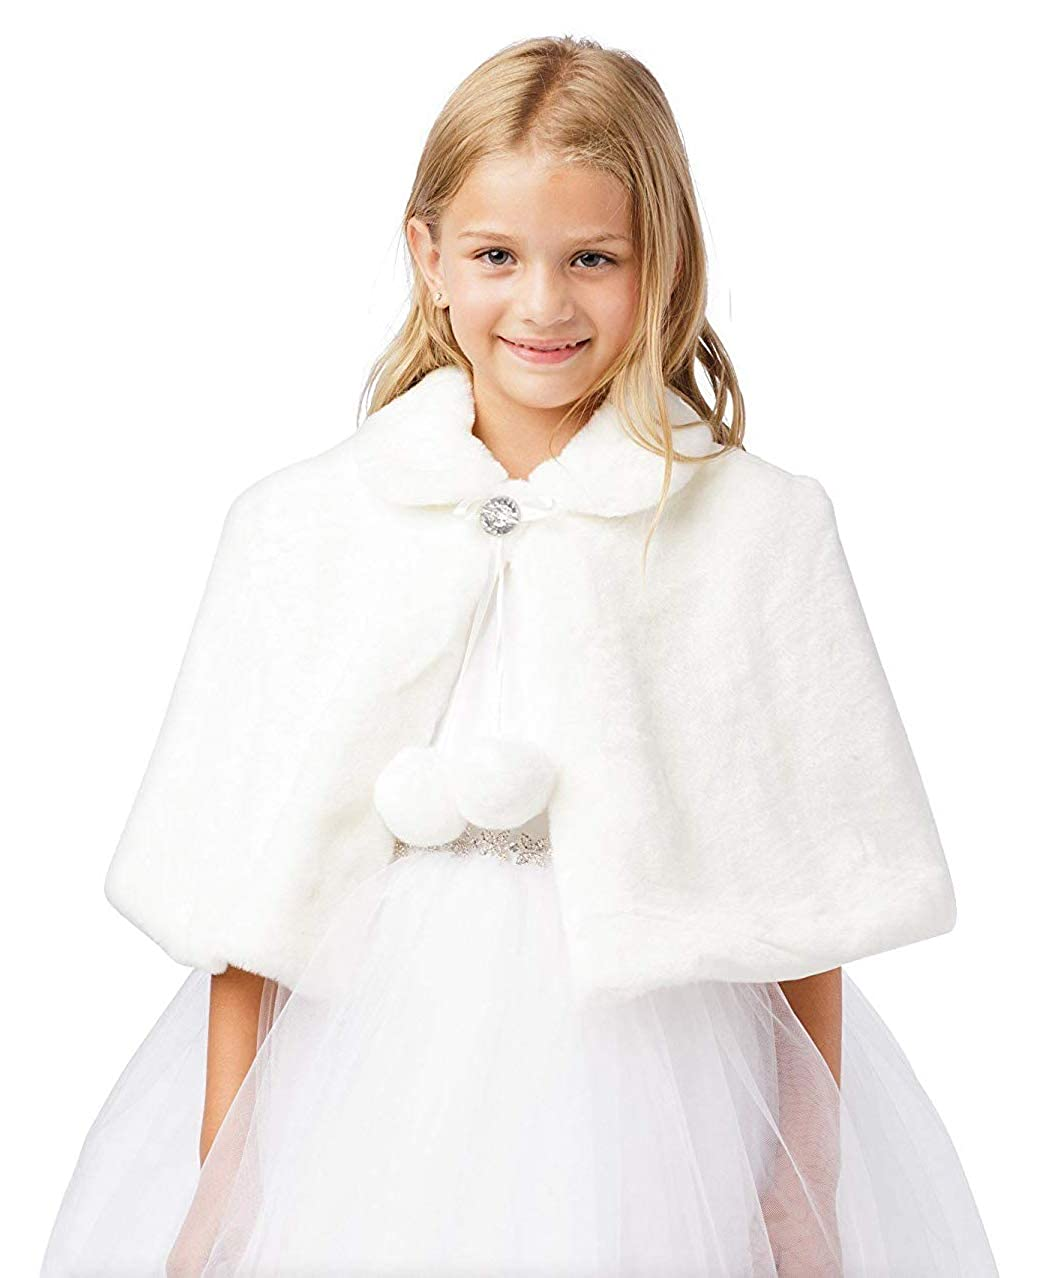 iGirldress Girls Plush Fur Cape with Collar Flower Girl Bolero Jacket Shrug Coat